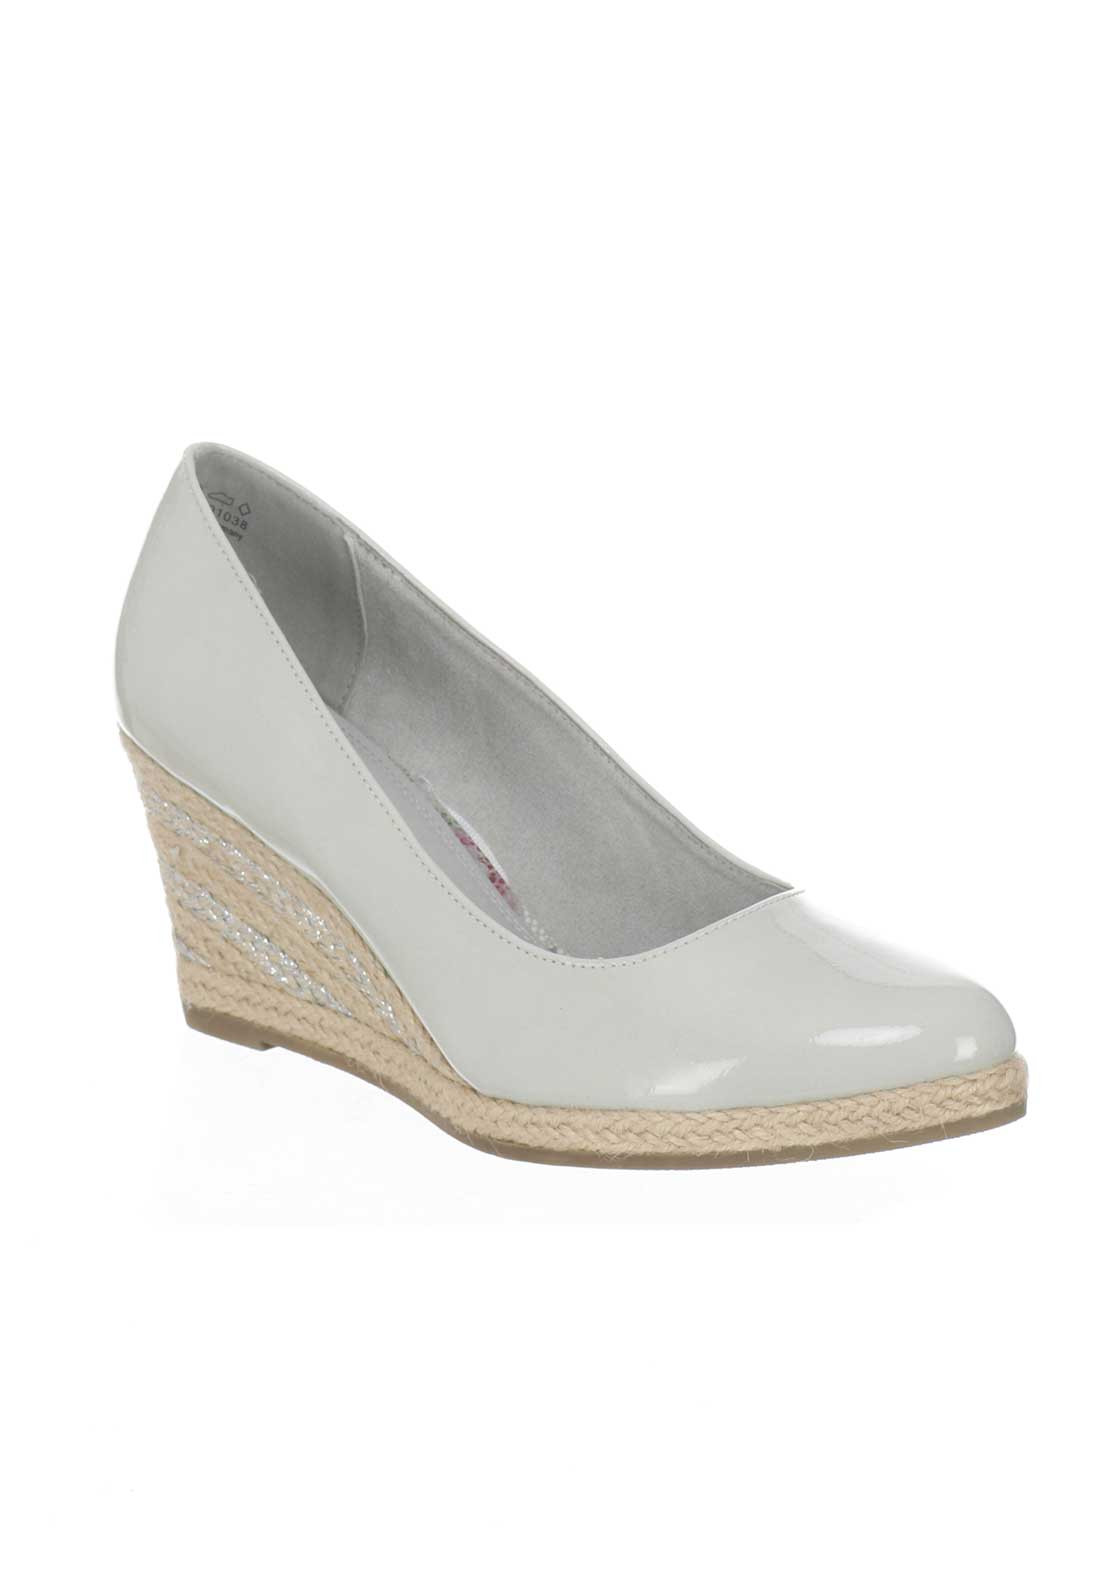 marco tozzi patent espadrille wedged shoes grey mcelhinneys. Black Bedroom Furniture Sets. Home Design Ideas